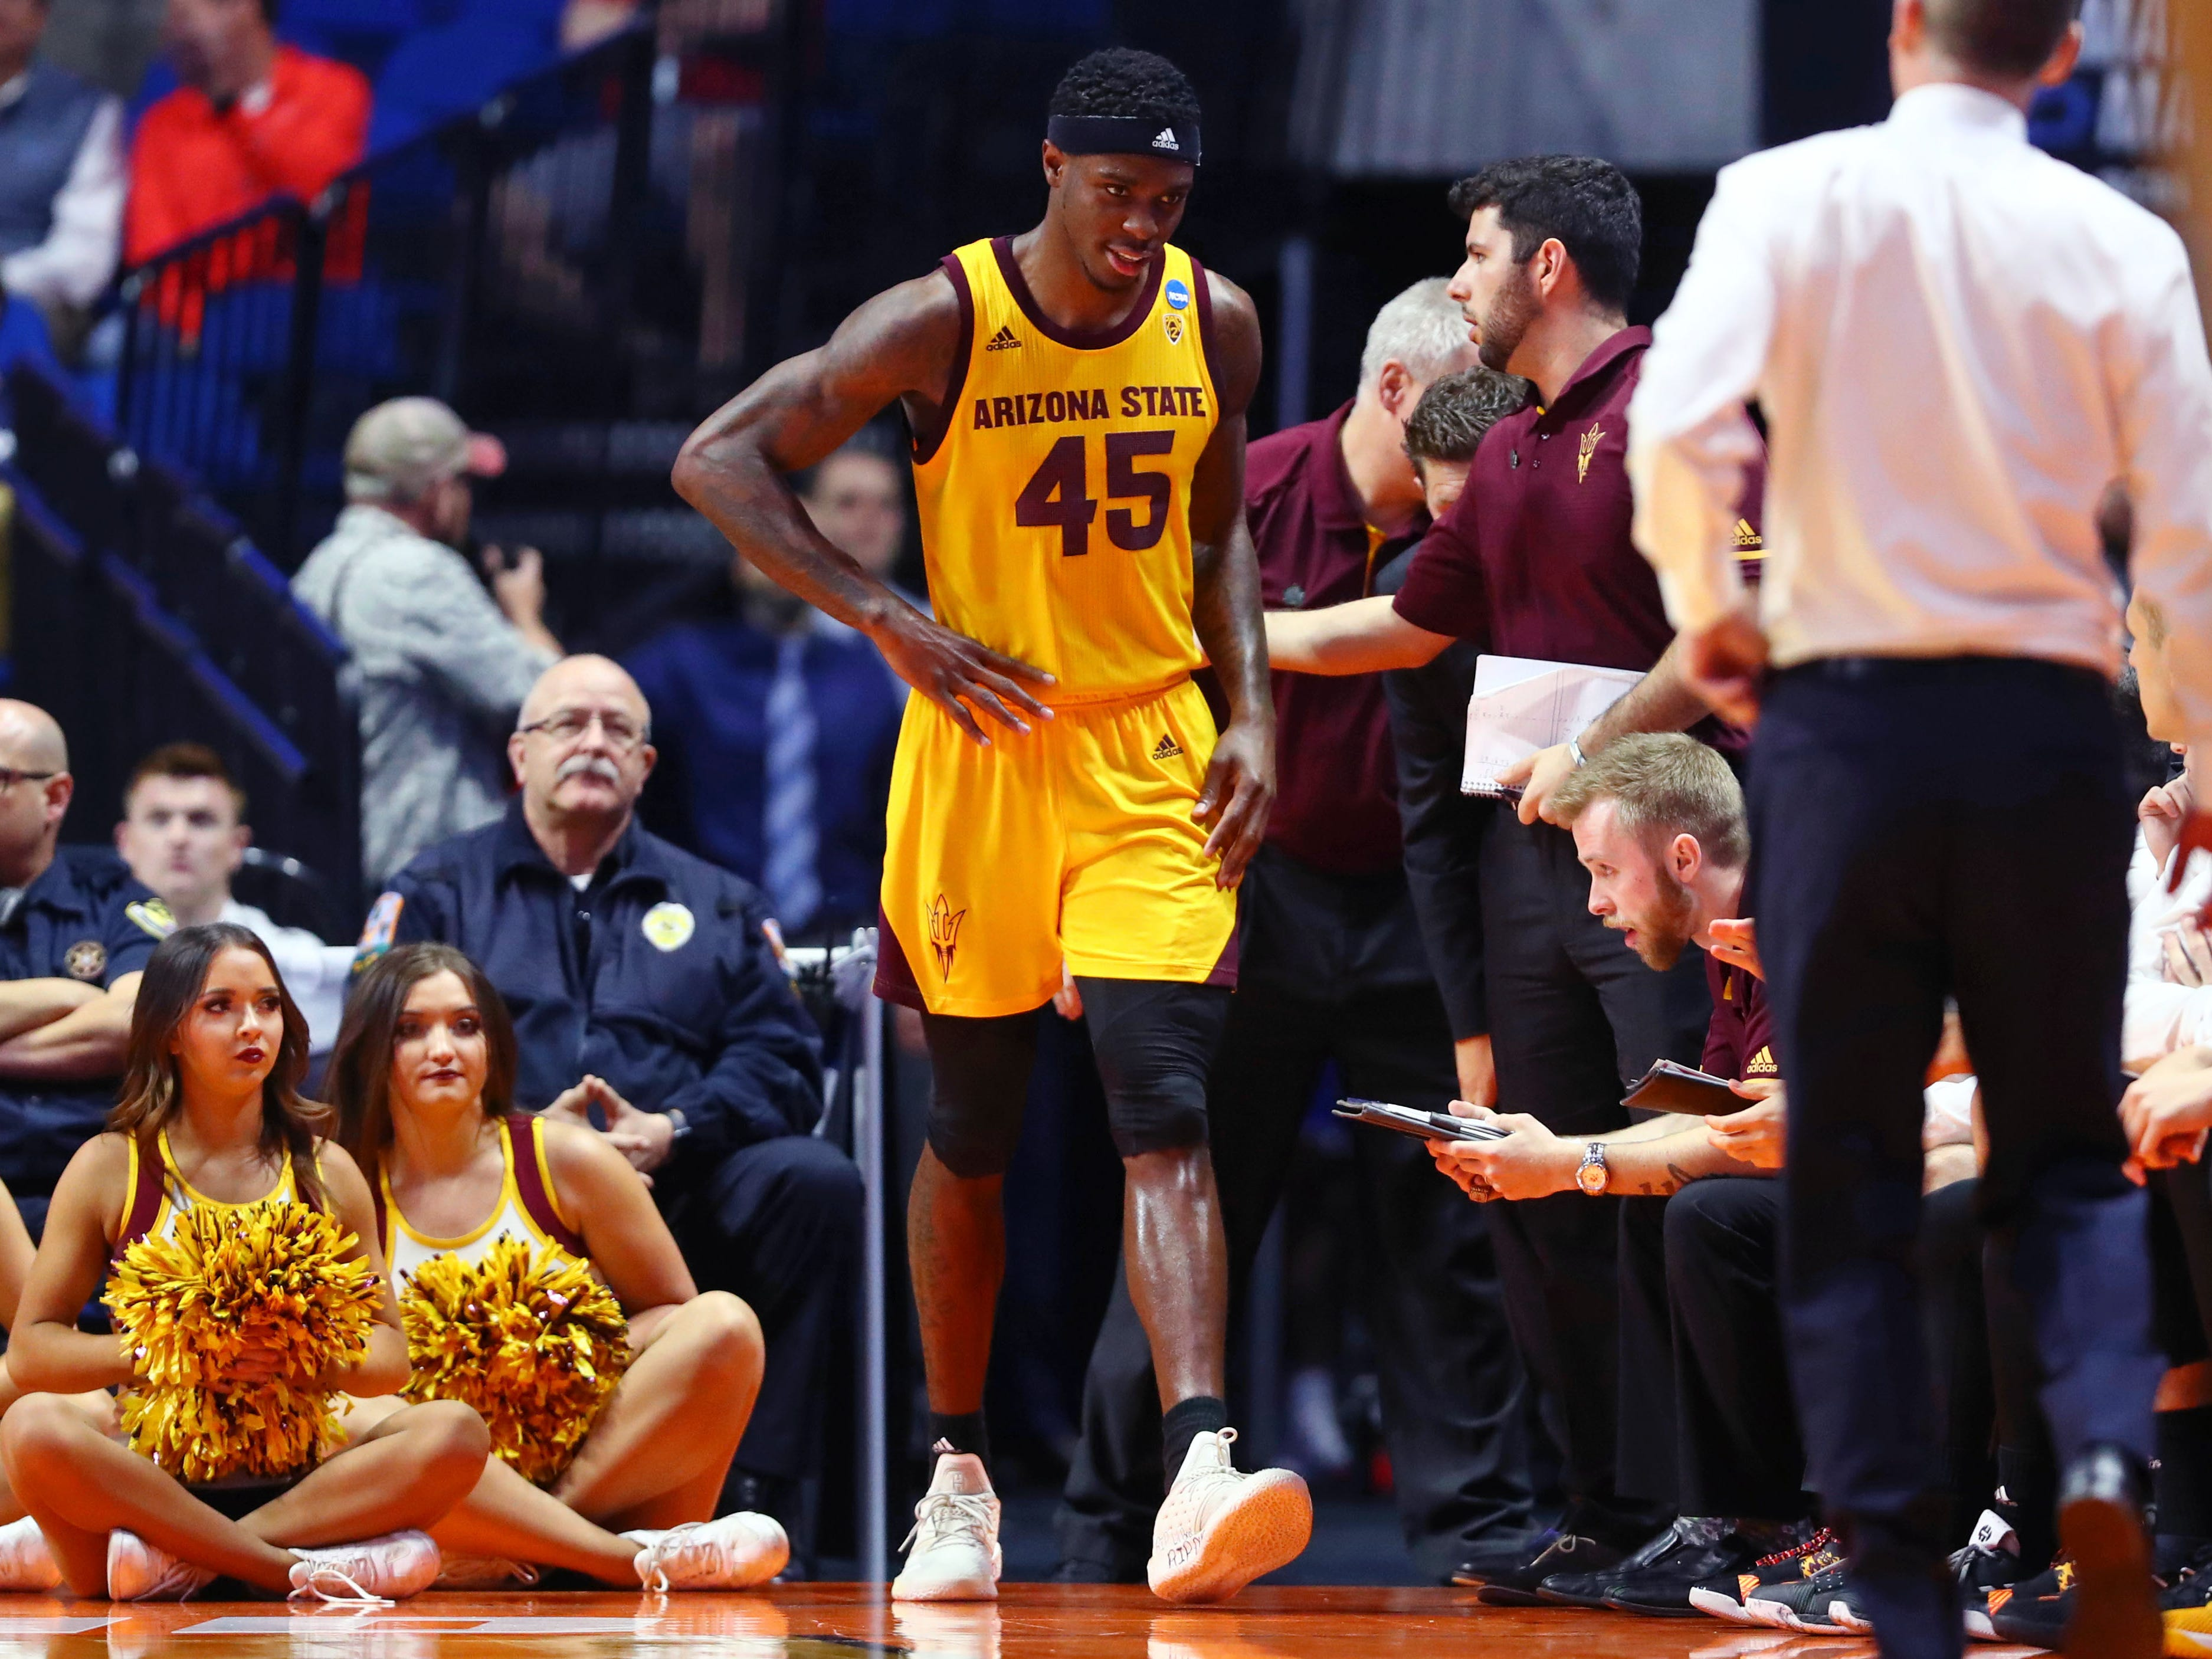 Mar 22, 2019; Tulsa, OK, USA; Arizona State Sun Devils forward Zylan Cheatham (45) walks along the bench in the final minutes of the game in their loss to Buffalo Bulls in the first round of the 2019 NCAA Tournament at BOK Center. The Buffalo Bulls won 91-74. Mandatory Credit: Mark J. Rebilas-USA TODAY Sports